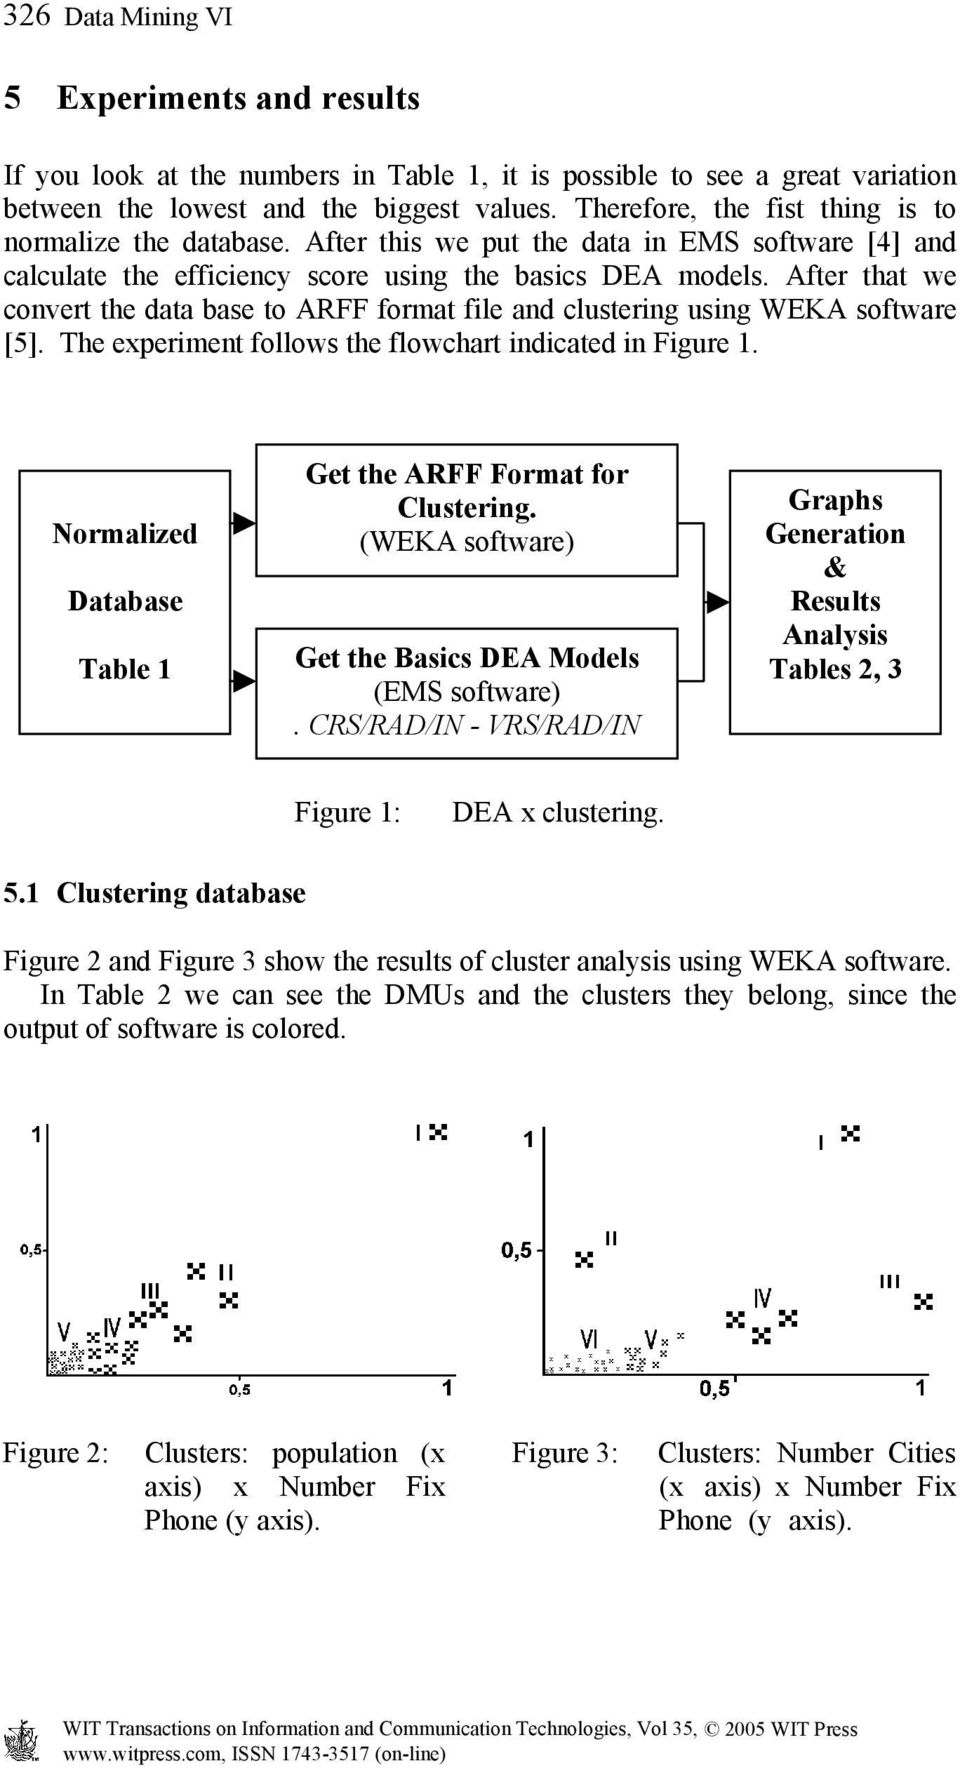 After that we convert the data base to ARFF format file and clustering using WEKA software [5]. The experiment follows the flowchart indicated in Figure 1.